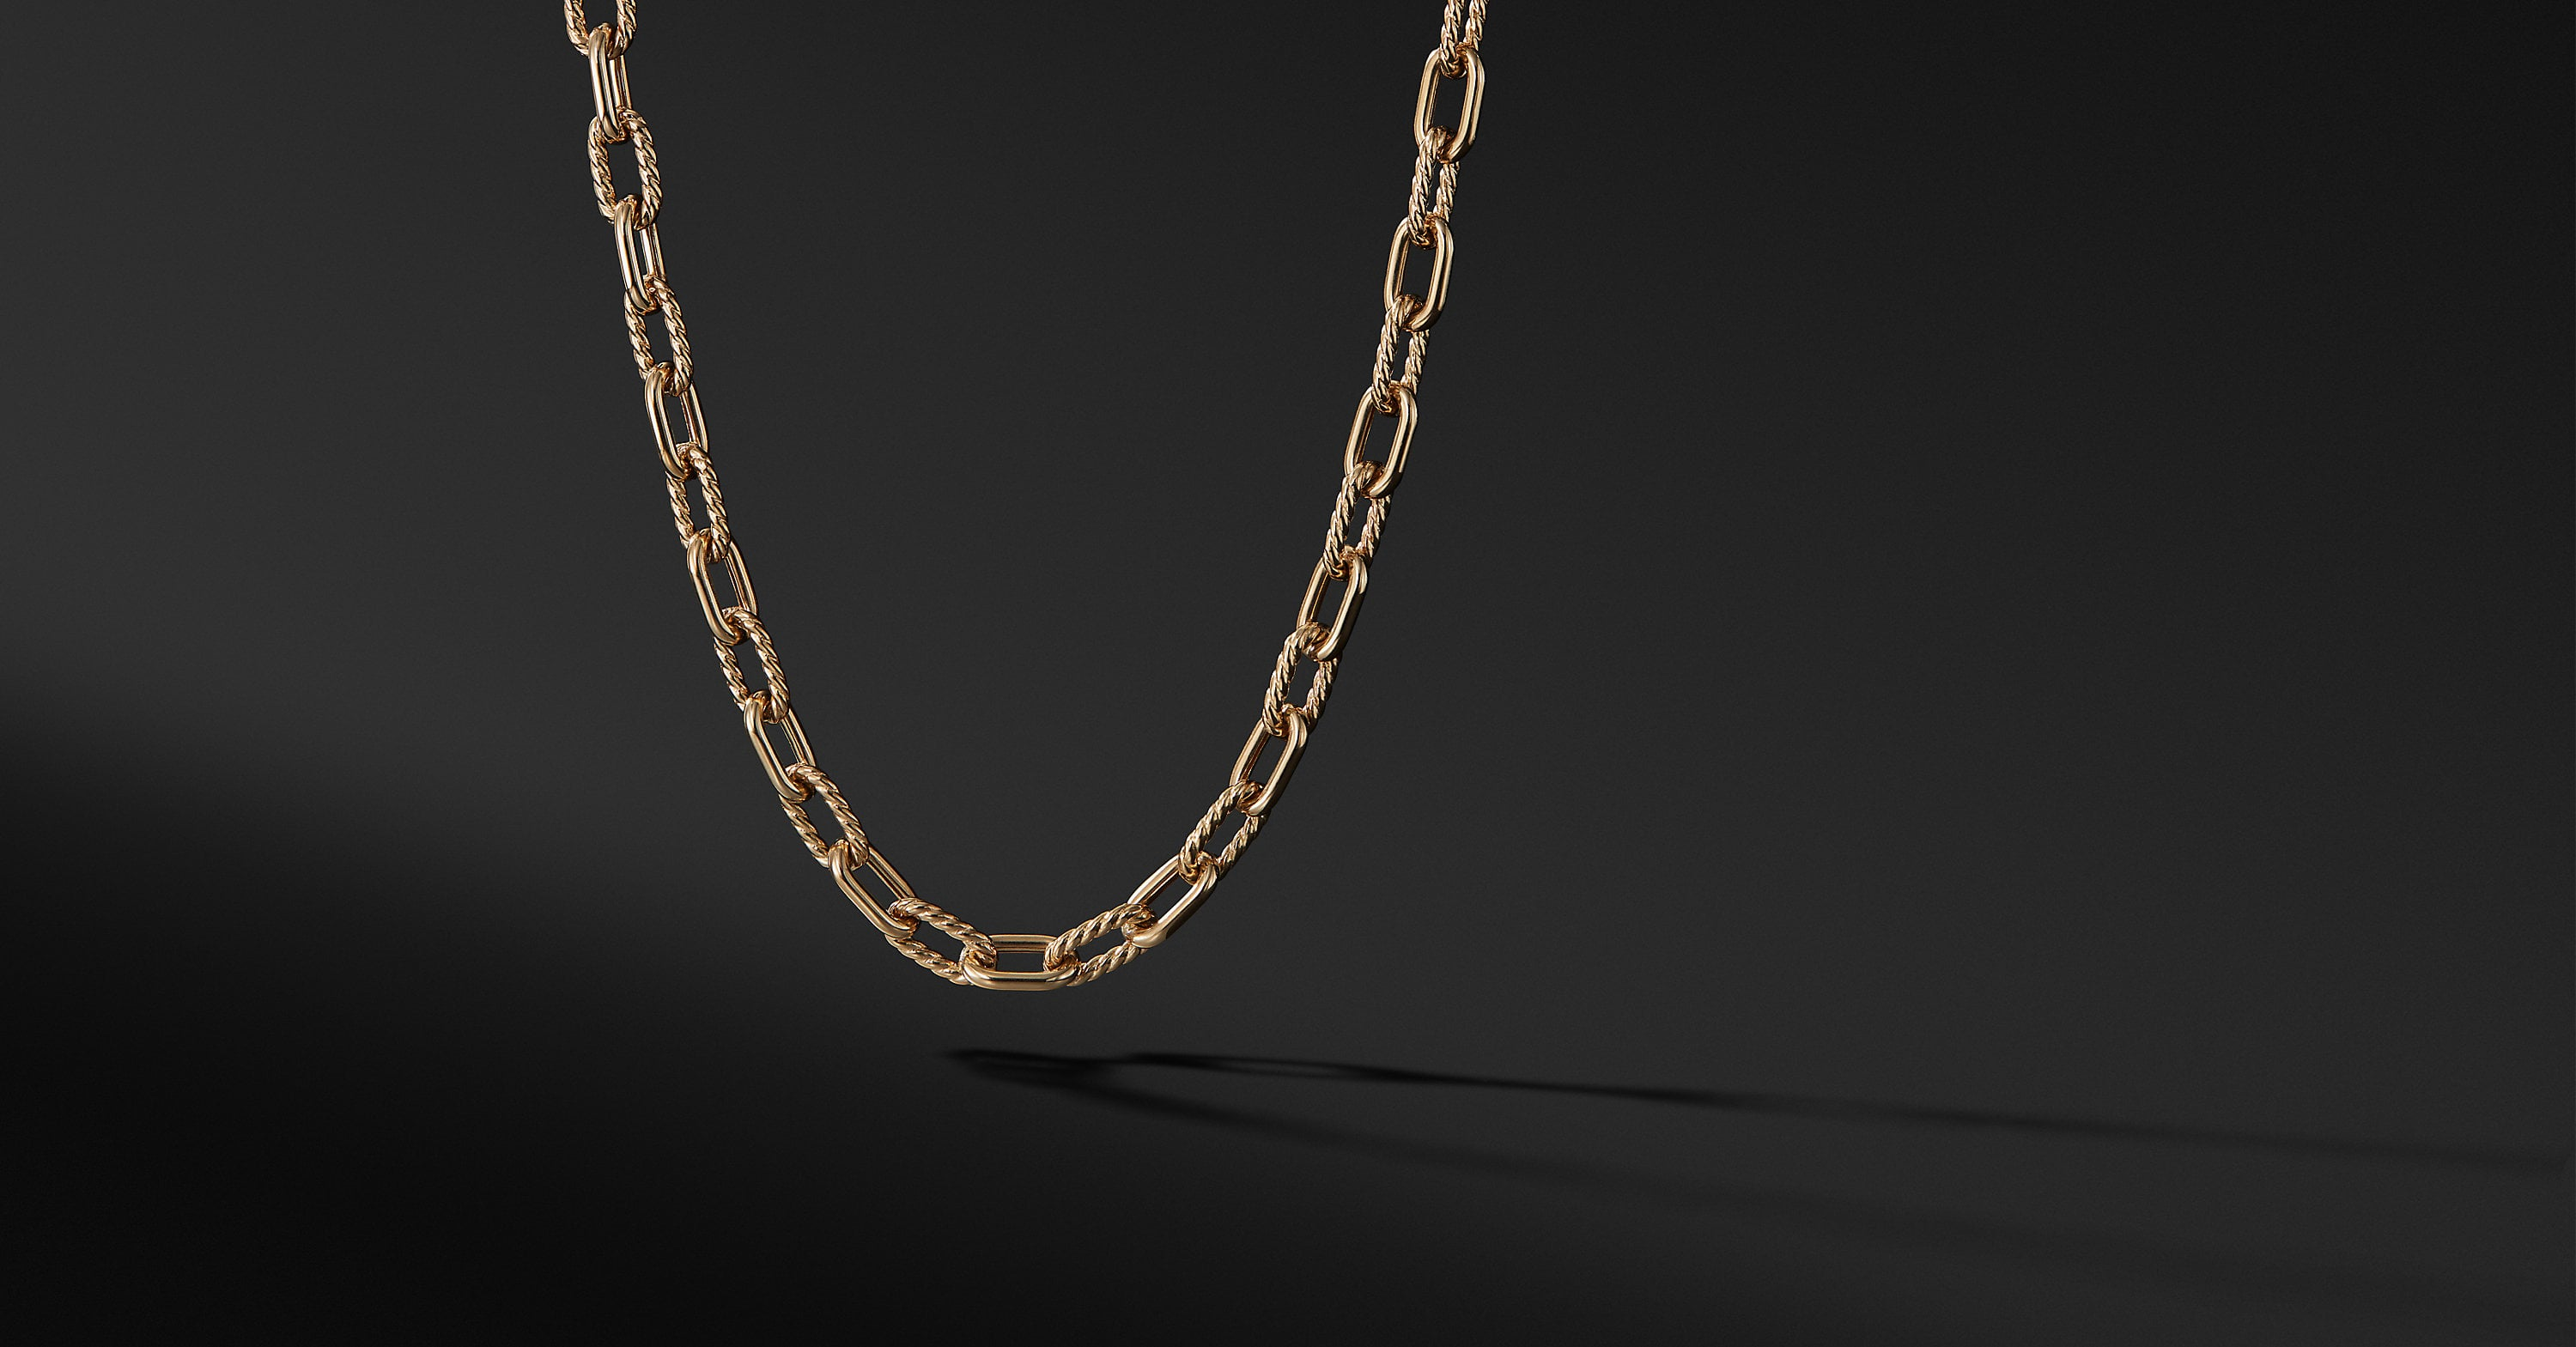 Chain and Cable Link Necklace in 18K Yellow Gold